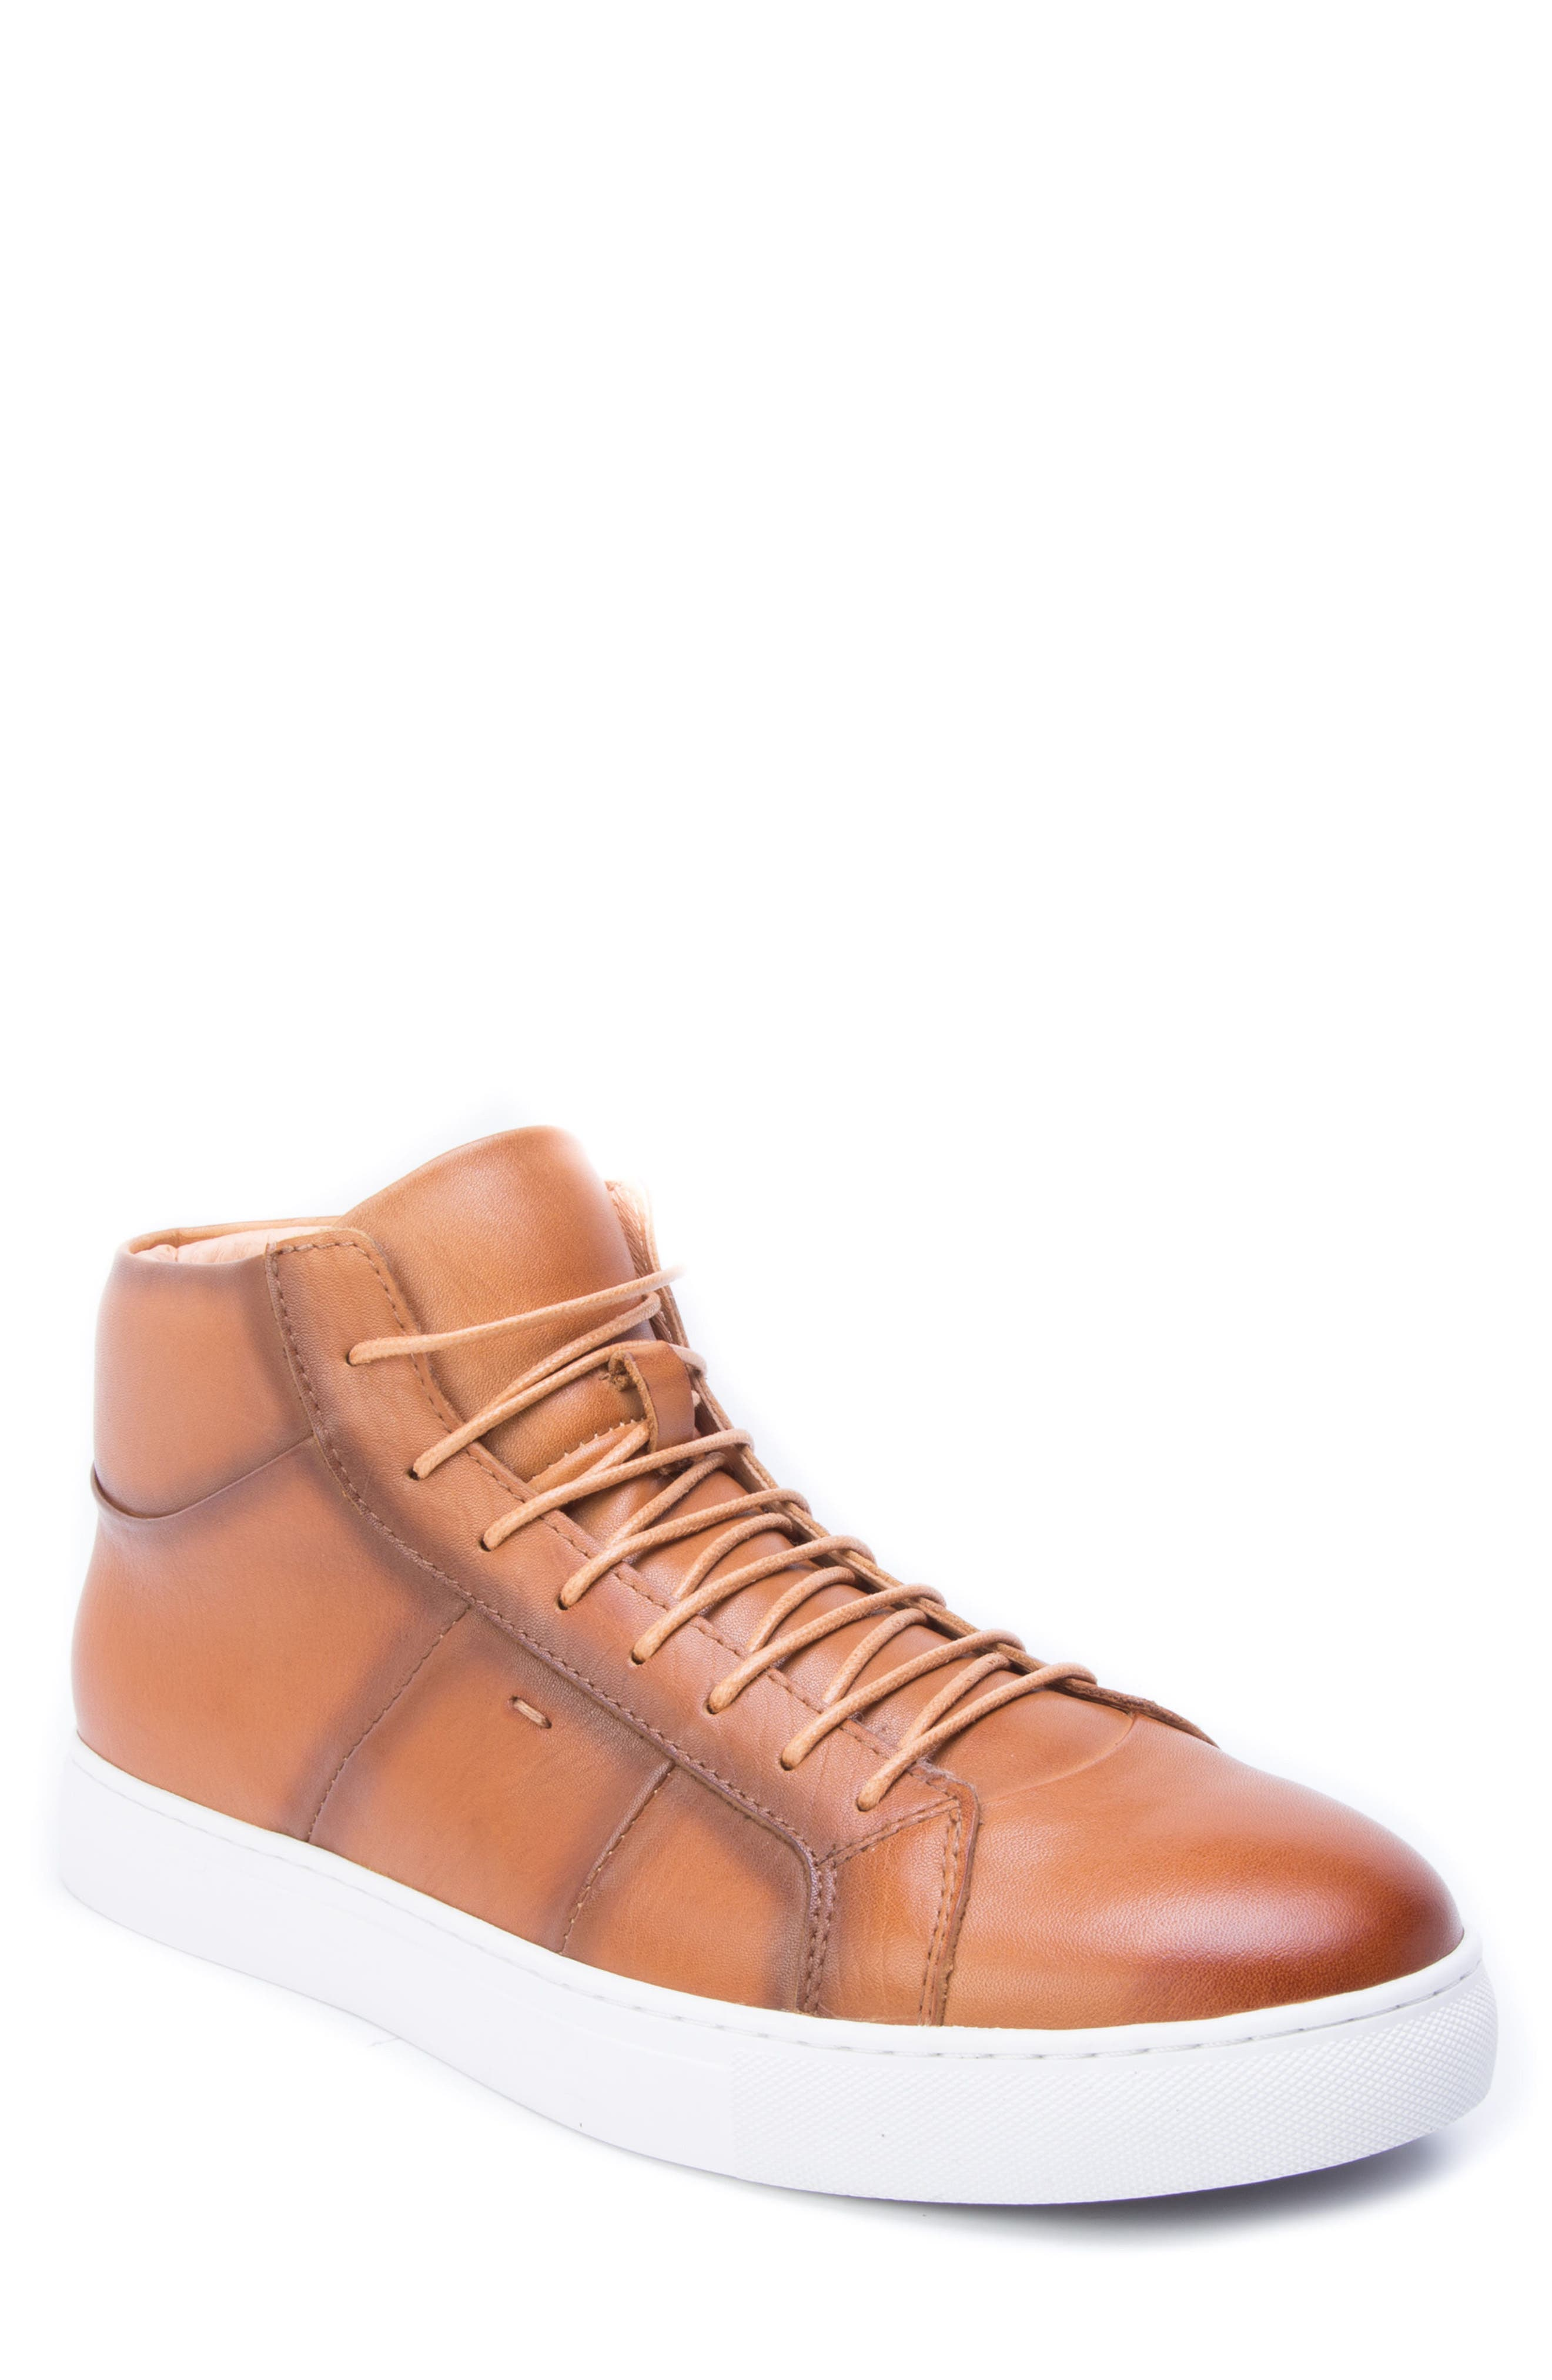 Phaser High Top Sneaker,                         Main,                         color, Cognac Leather